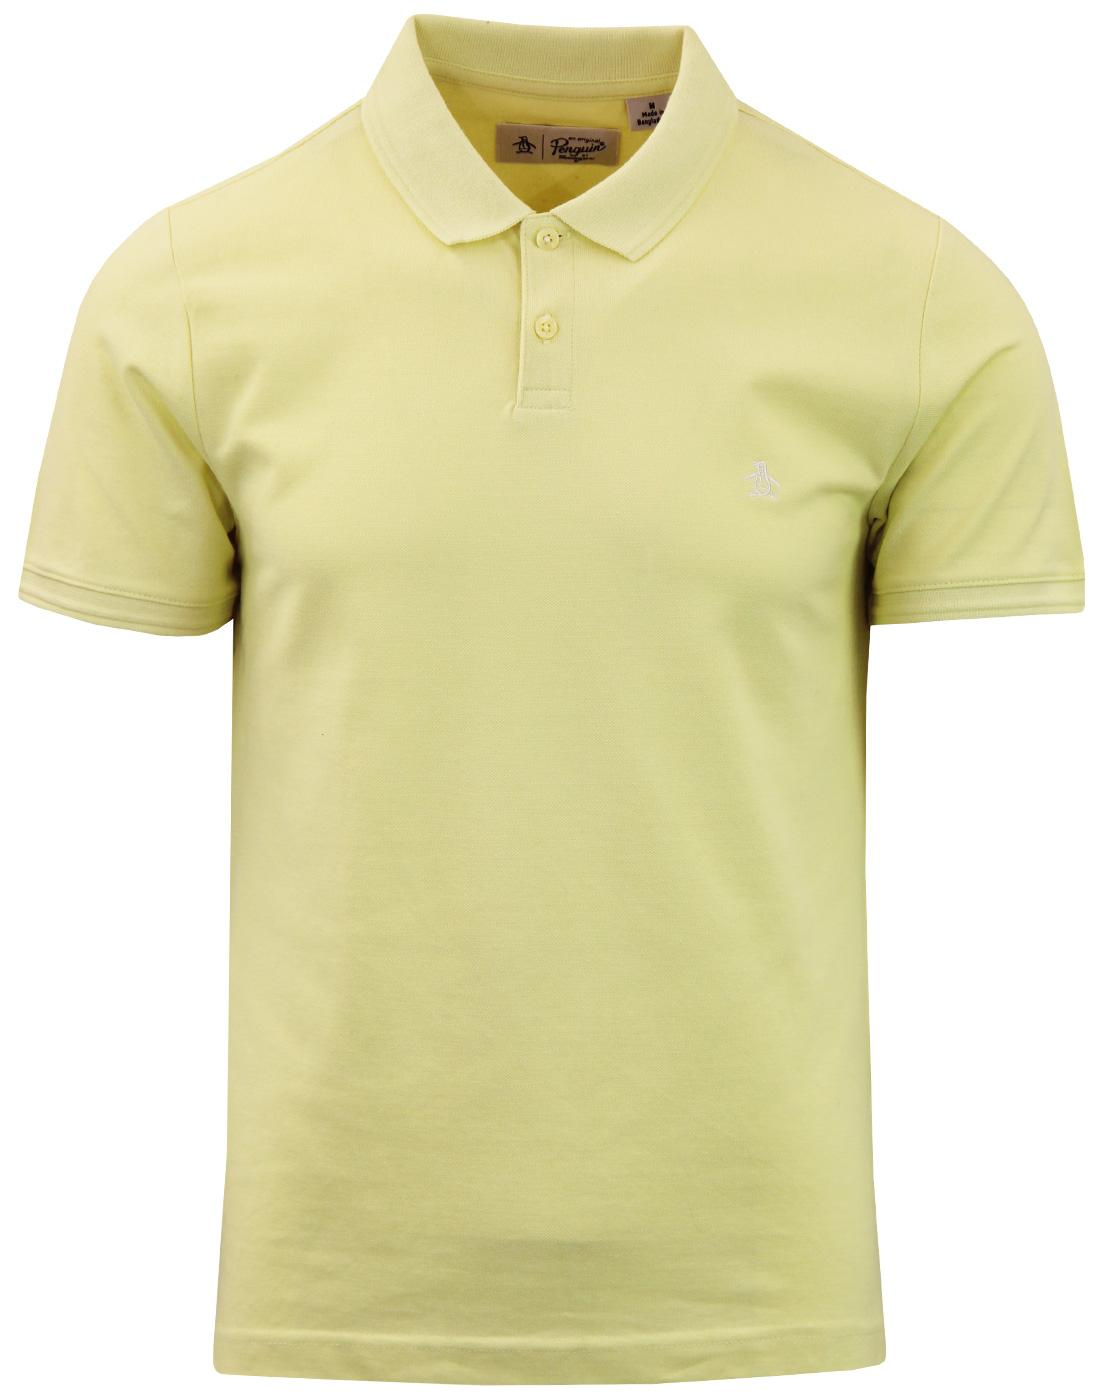 ORIGINAL PENGUIN Mod Raised Rib Pique Polo Top (Y)